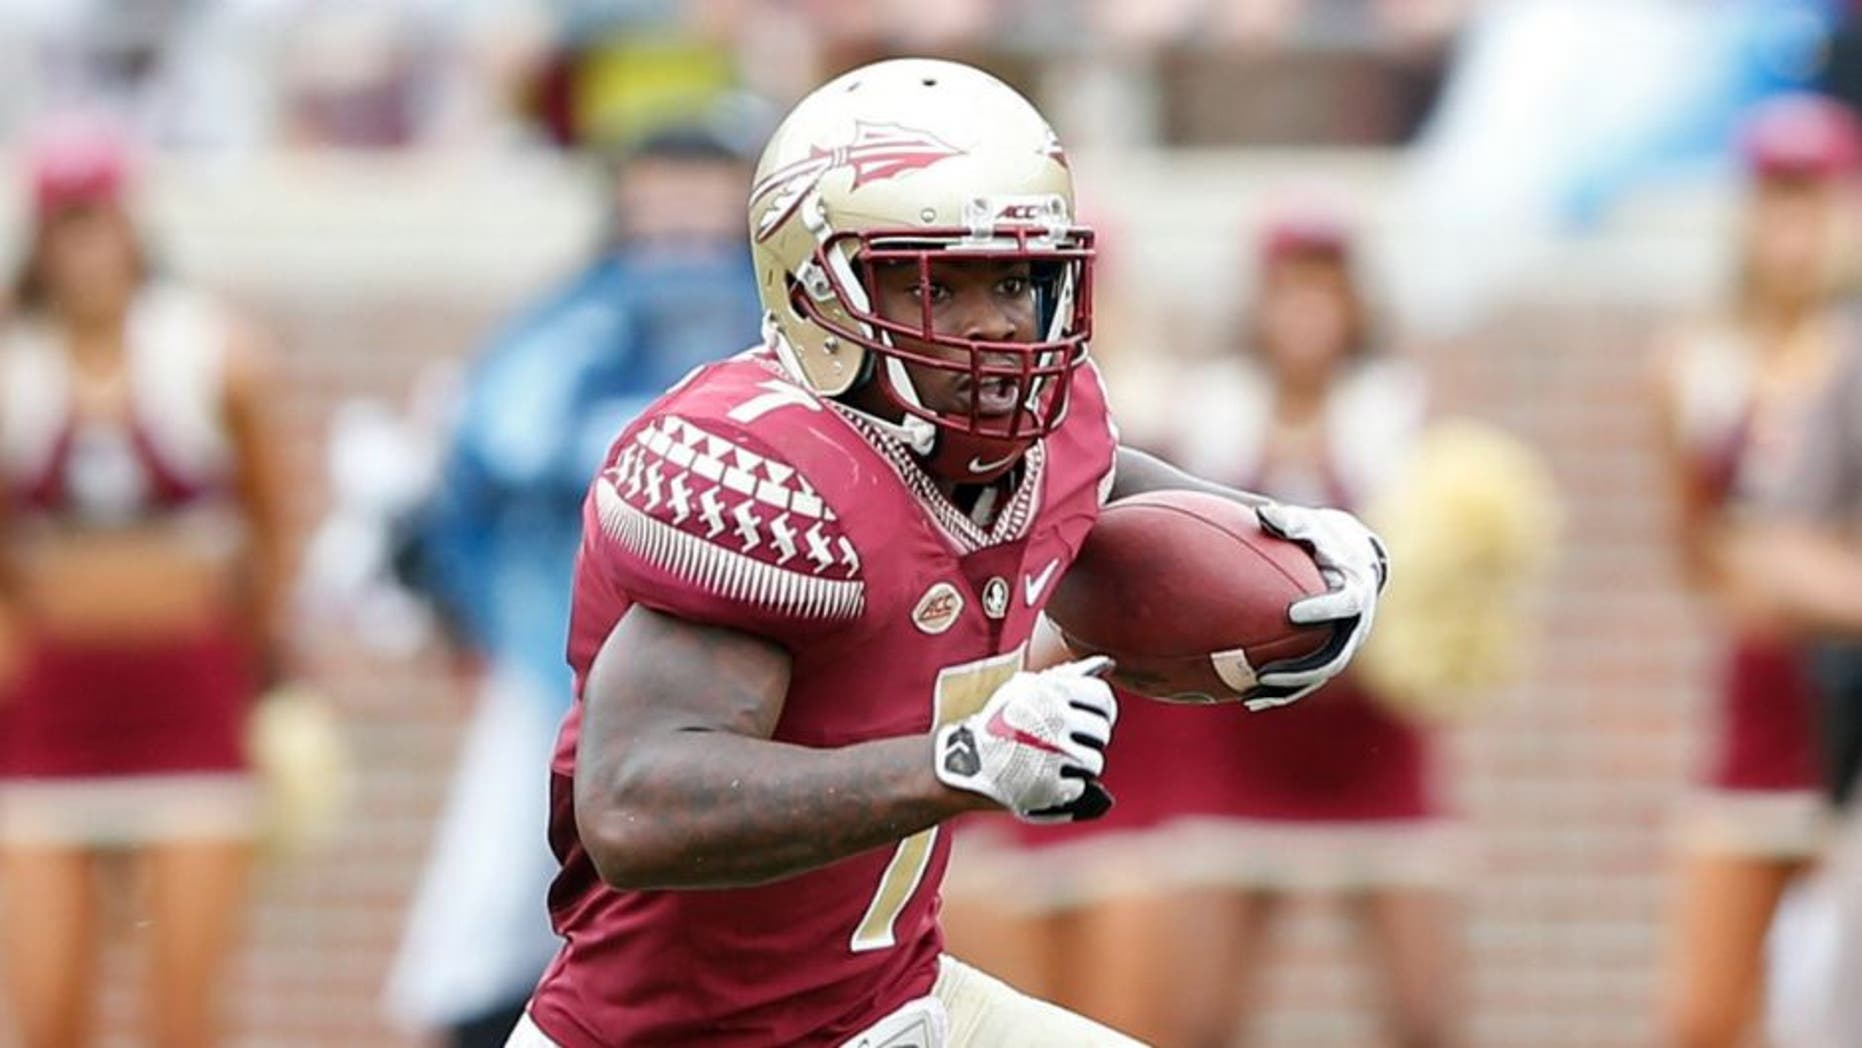 TALLAHASSEE, FL - SEPTEMBER 12: Mario Pender #7 of the Florida State Seminoles runs the ball against the South Florida Bulls during the game at Doak Campbell Stadium on September 12, 2015 in Tallahassee, Florida. Florida State defeated South Florida 34-14. (Photo by Joe Robbins/Getty Images)